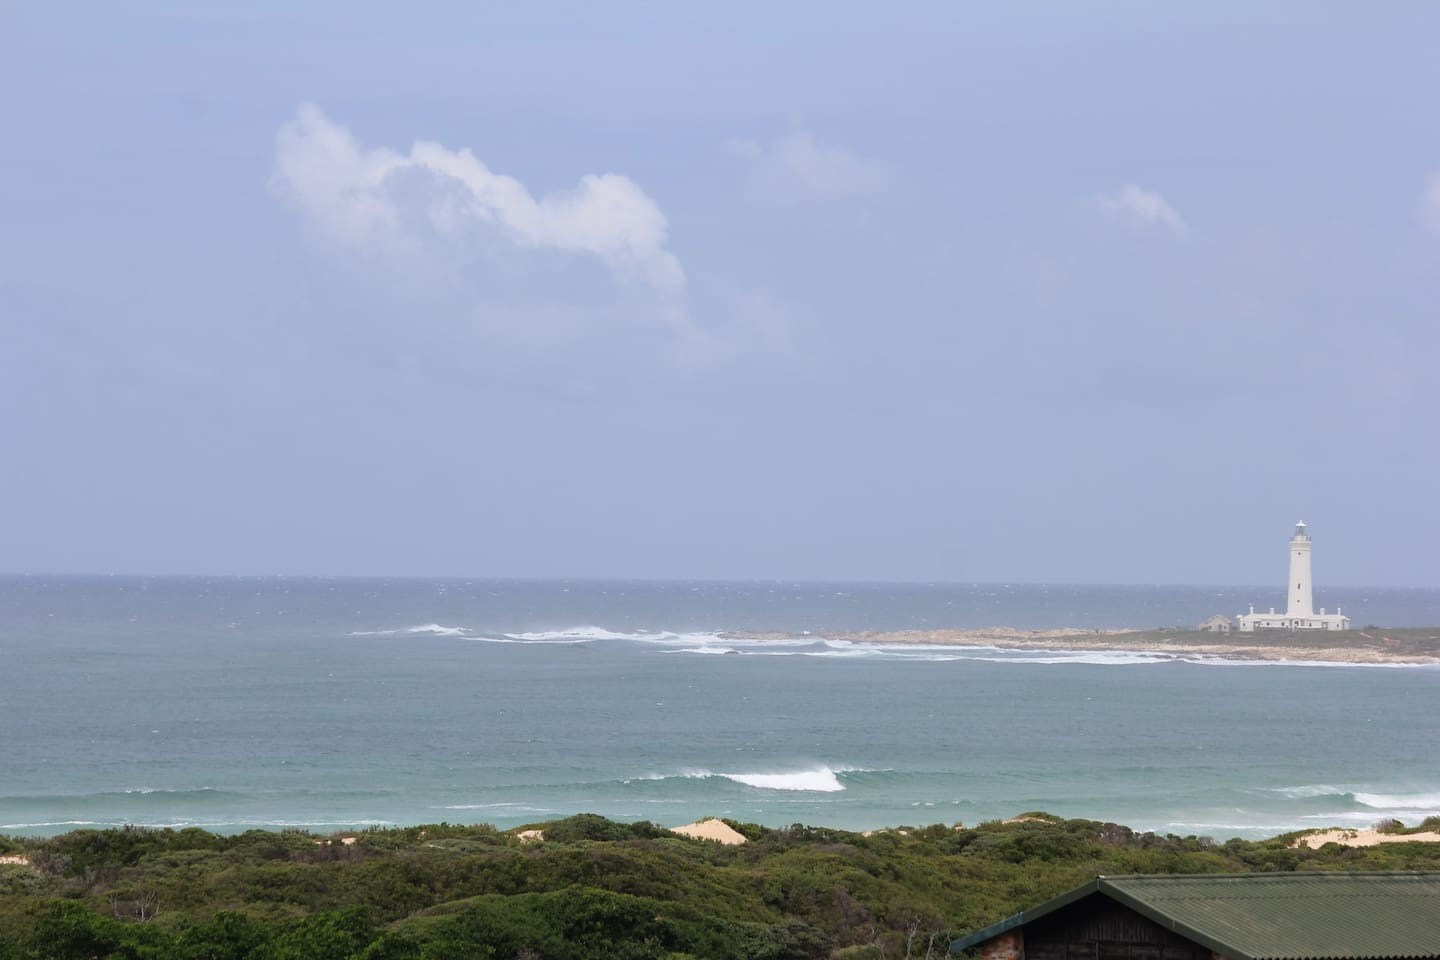 Balcony view 1: a picture worth a thousand words: Our beautiful lighthouse and Seal point surf break